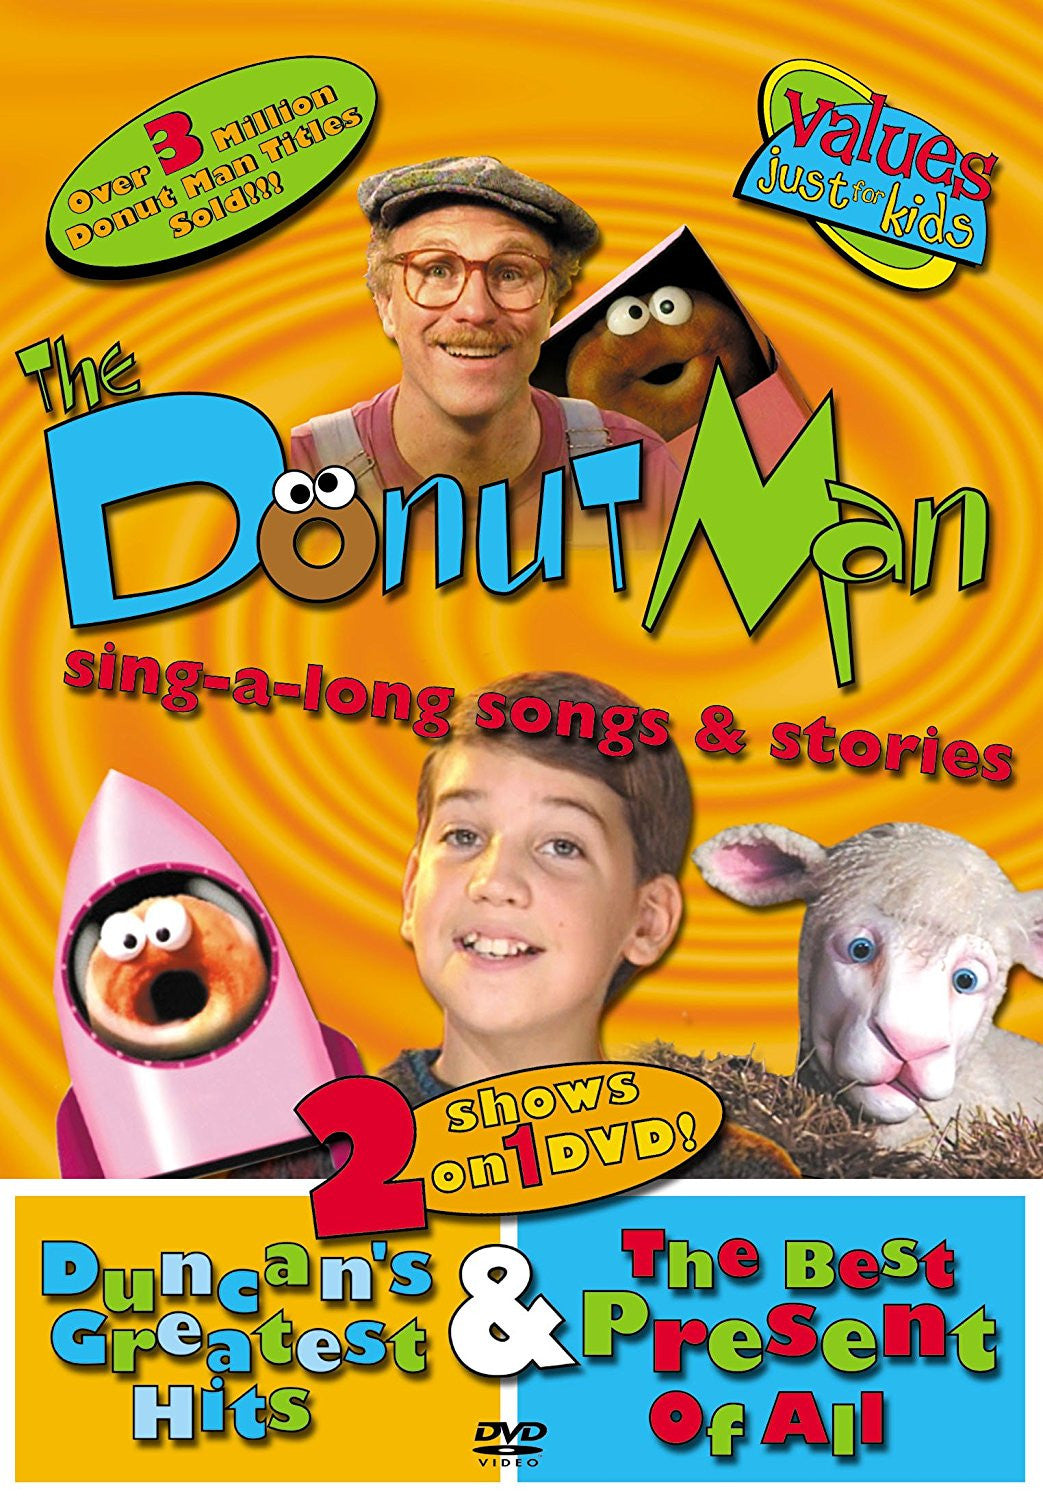 The Donut Man: Duncan's Greatest Hits / The Best Present of All